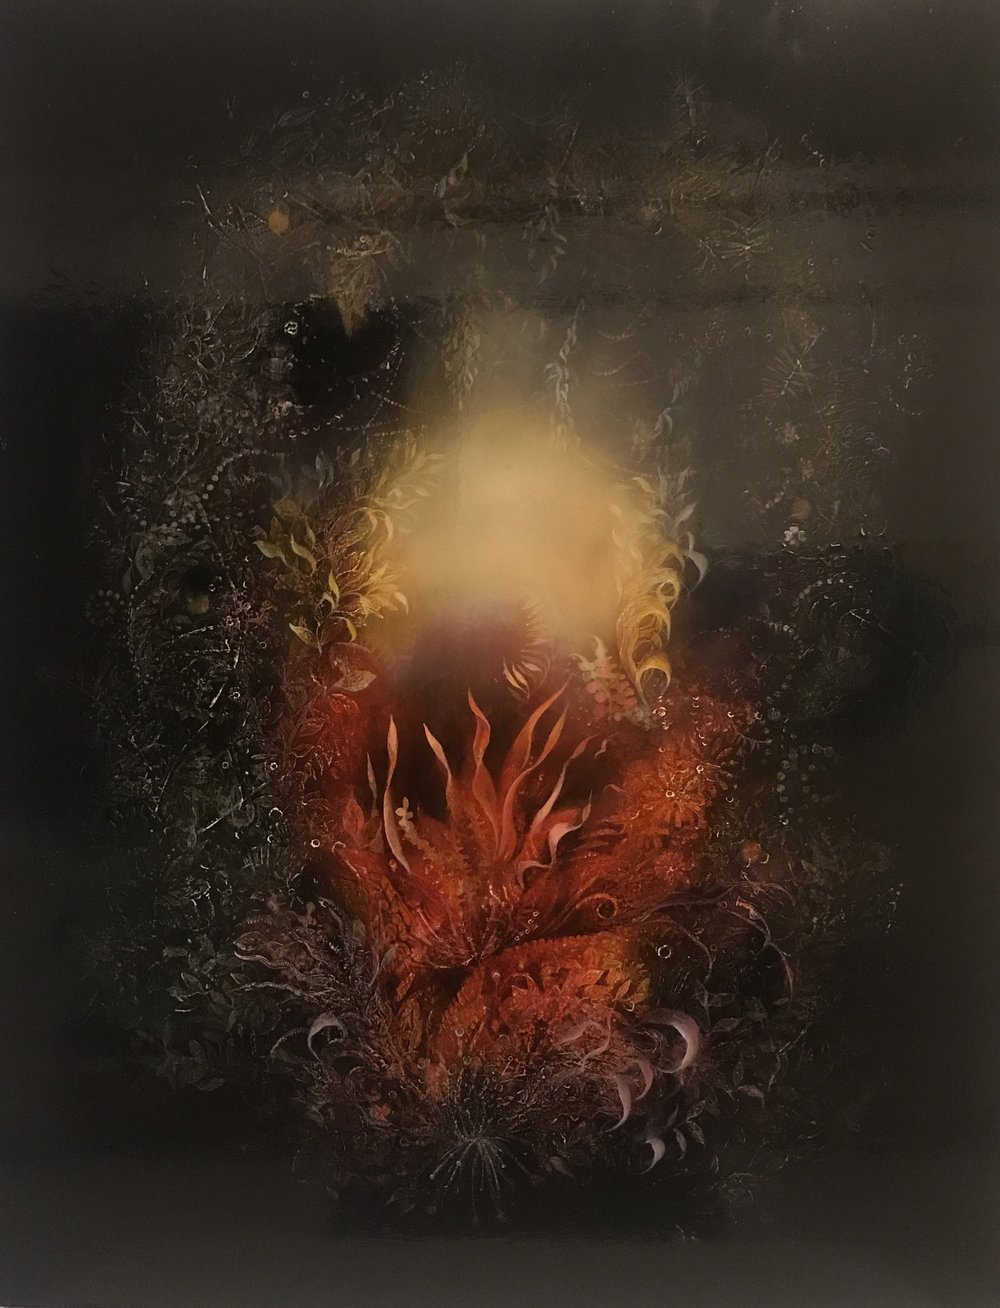 Hallows, Oil & wax, 24x18, 2018 (sold)